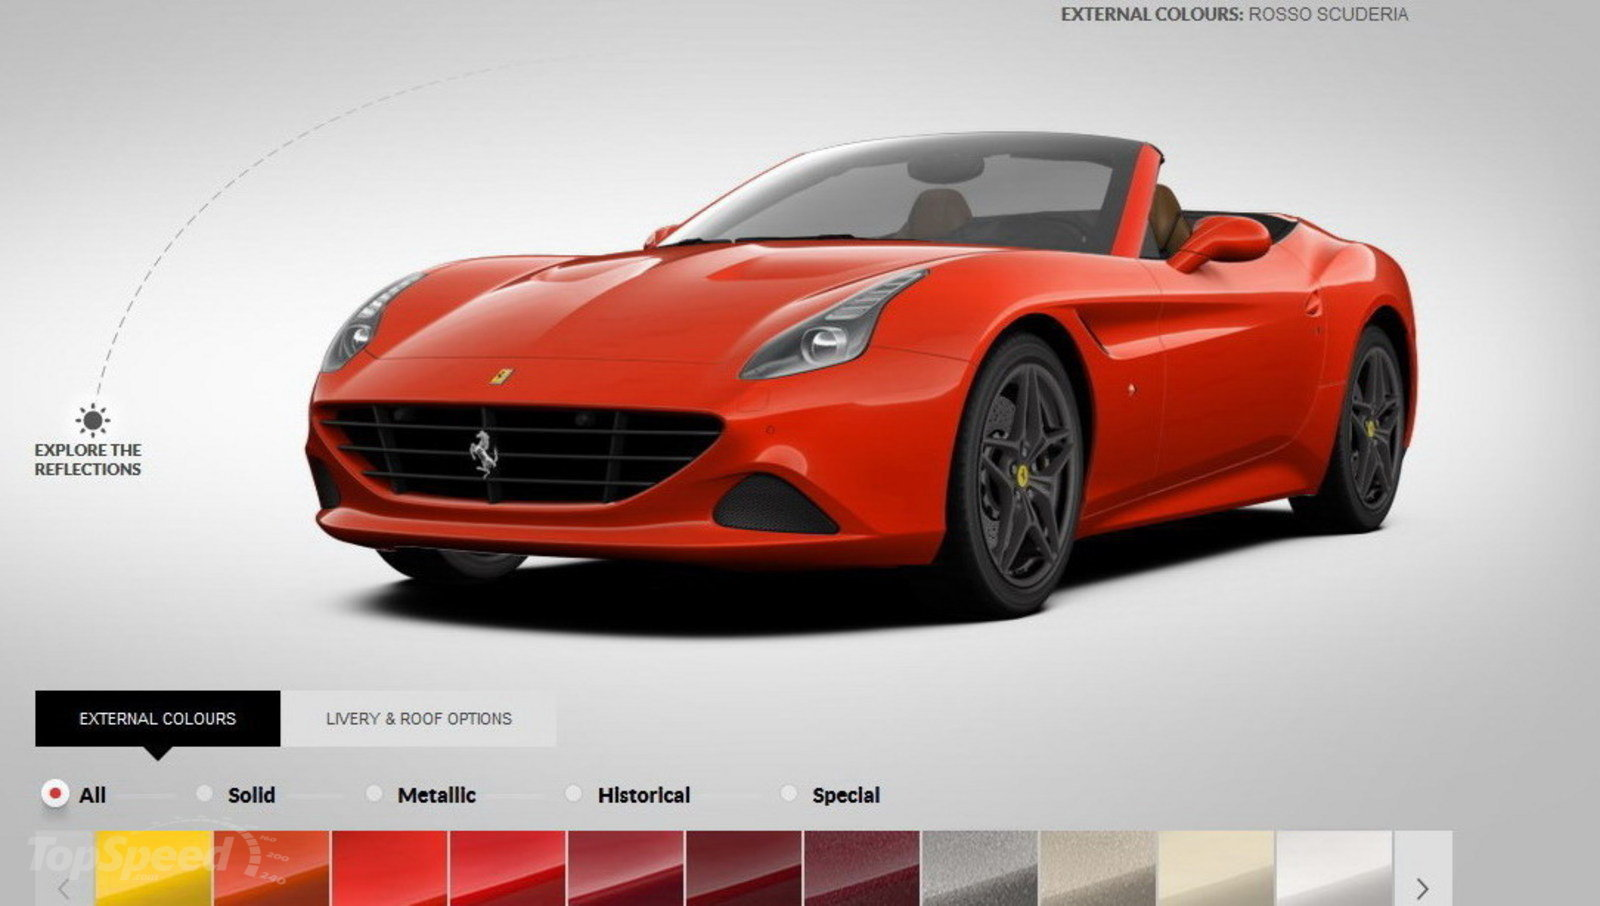 ferrari california t configurator updated with new colors and options news top speed. Black Bedroom Furniture Sets. Home Design Ideas